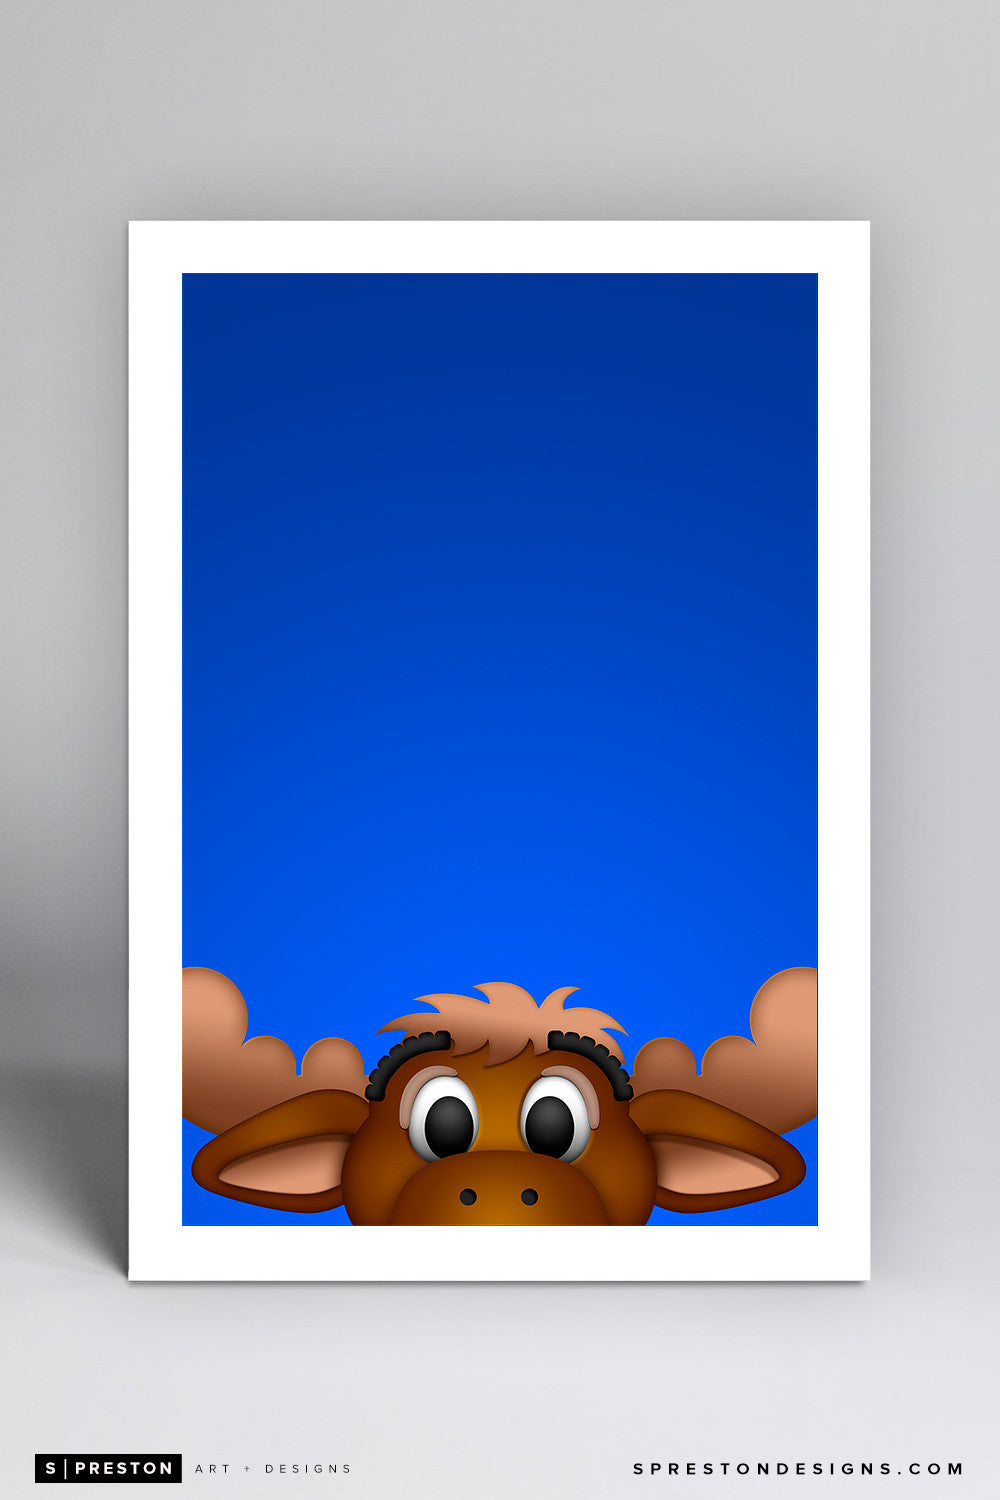 Minimalist Mariner Moose Art Print - Seattle Mariners - S. Preston Art + Designs